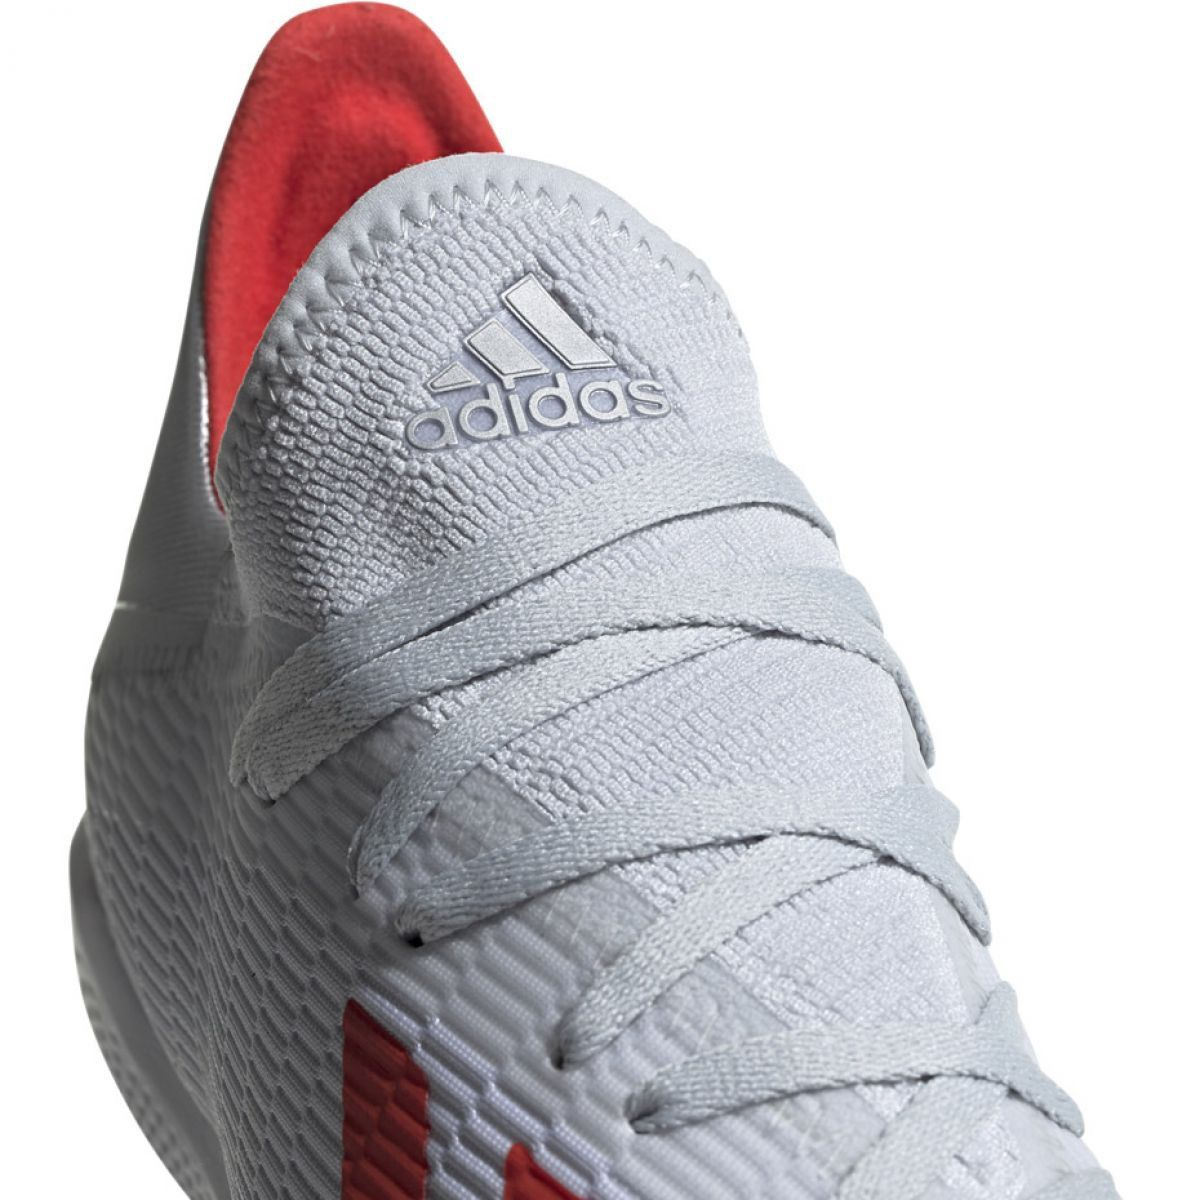 Indoor Shoes Adidas X 19 3 In M F35370 White White Mens Football Boots Indoor Shoe Football Boots